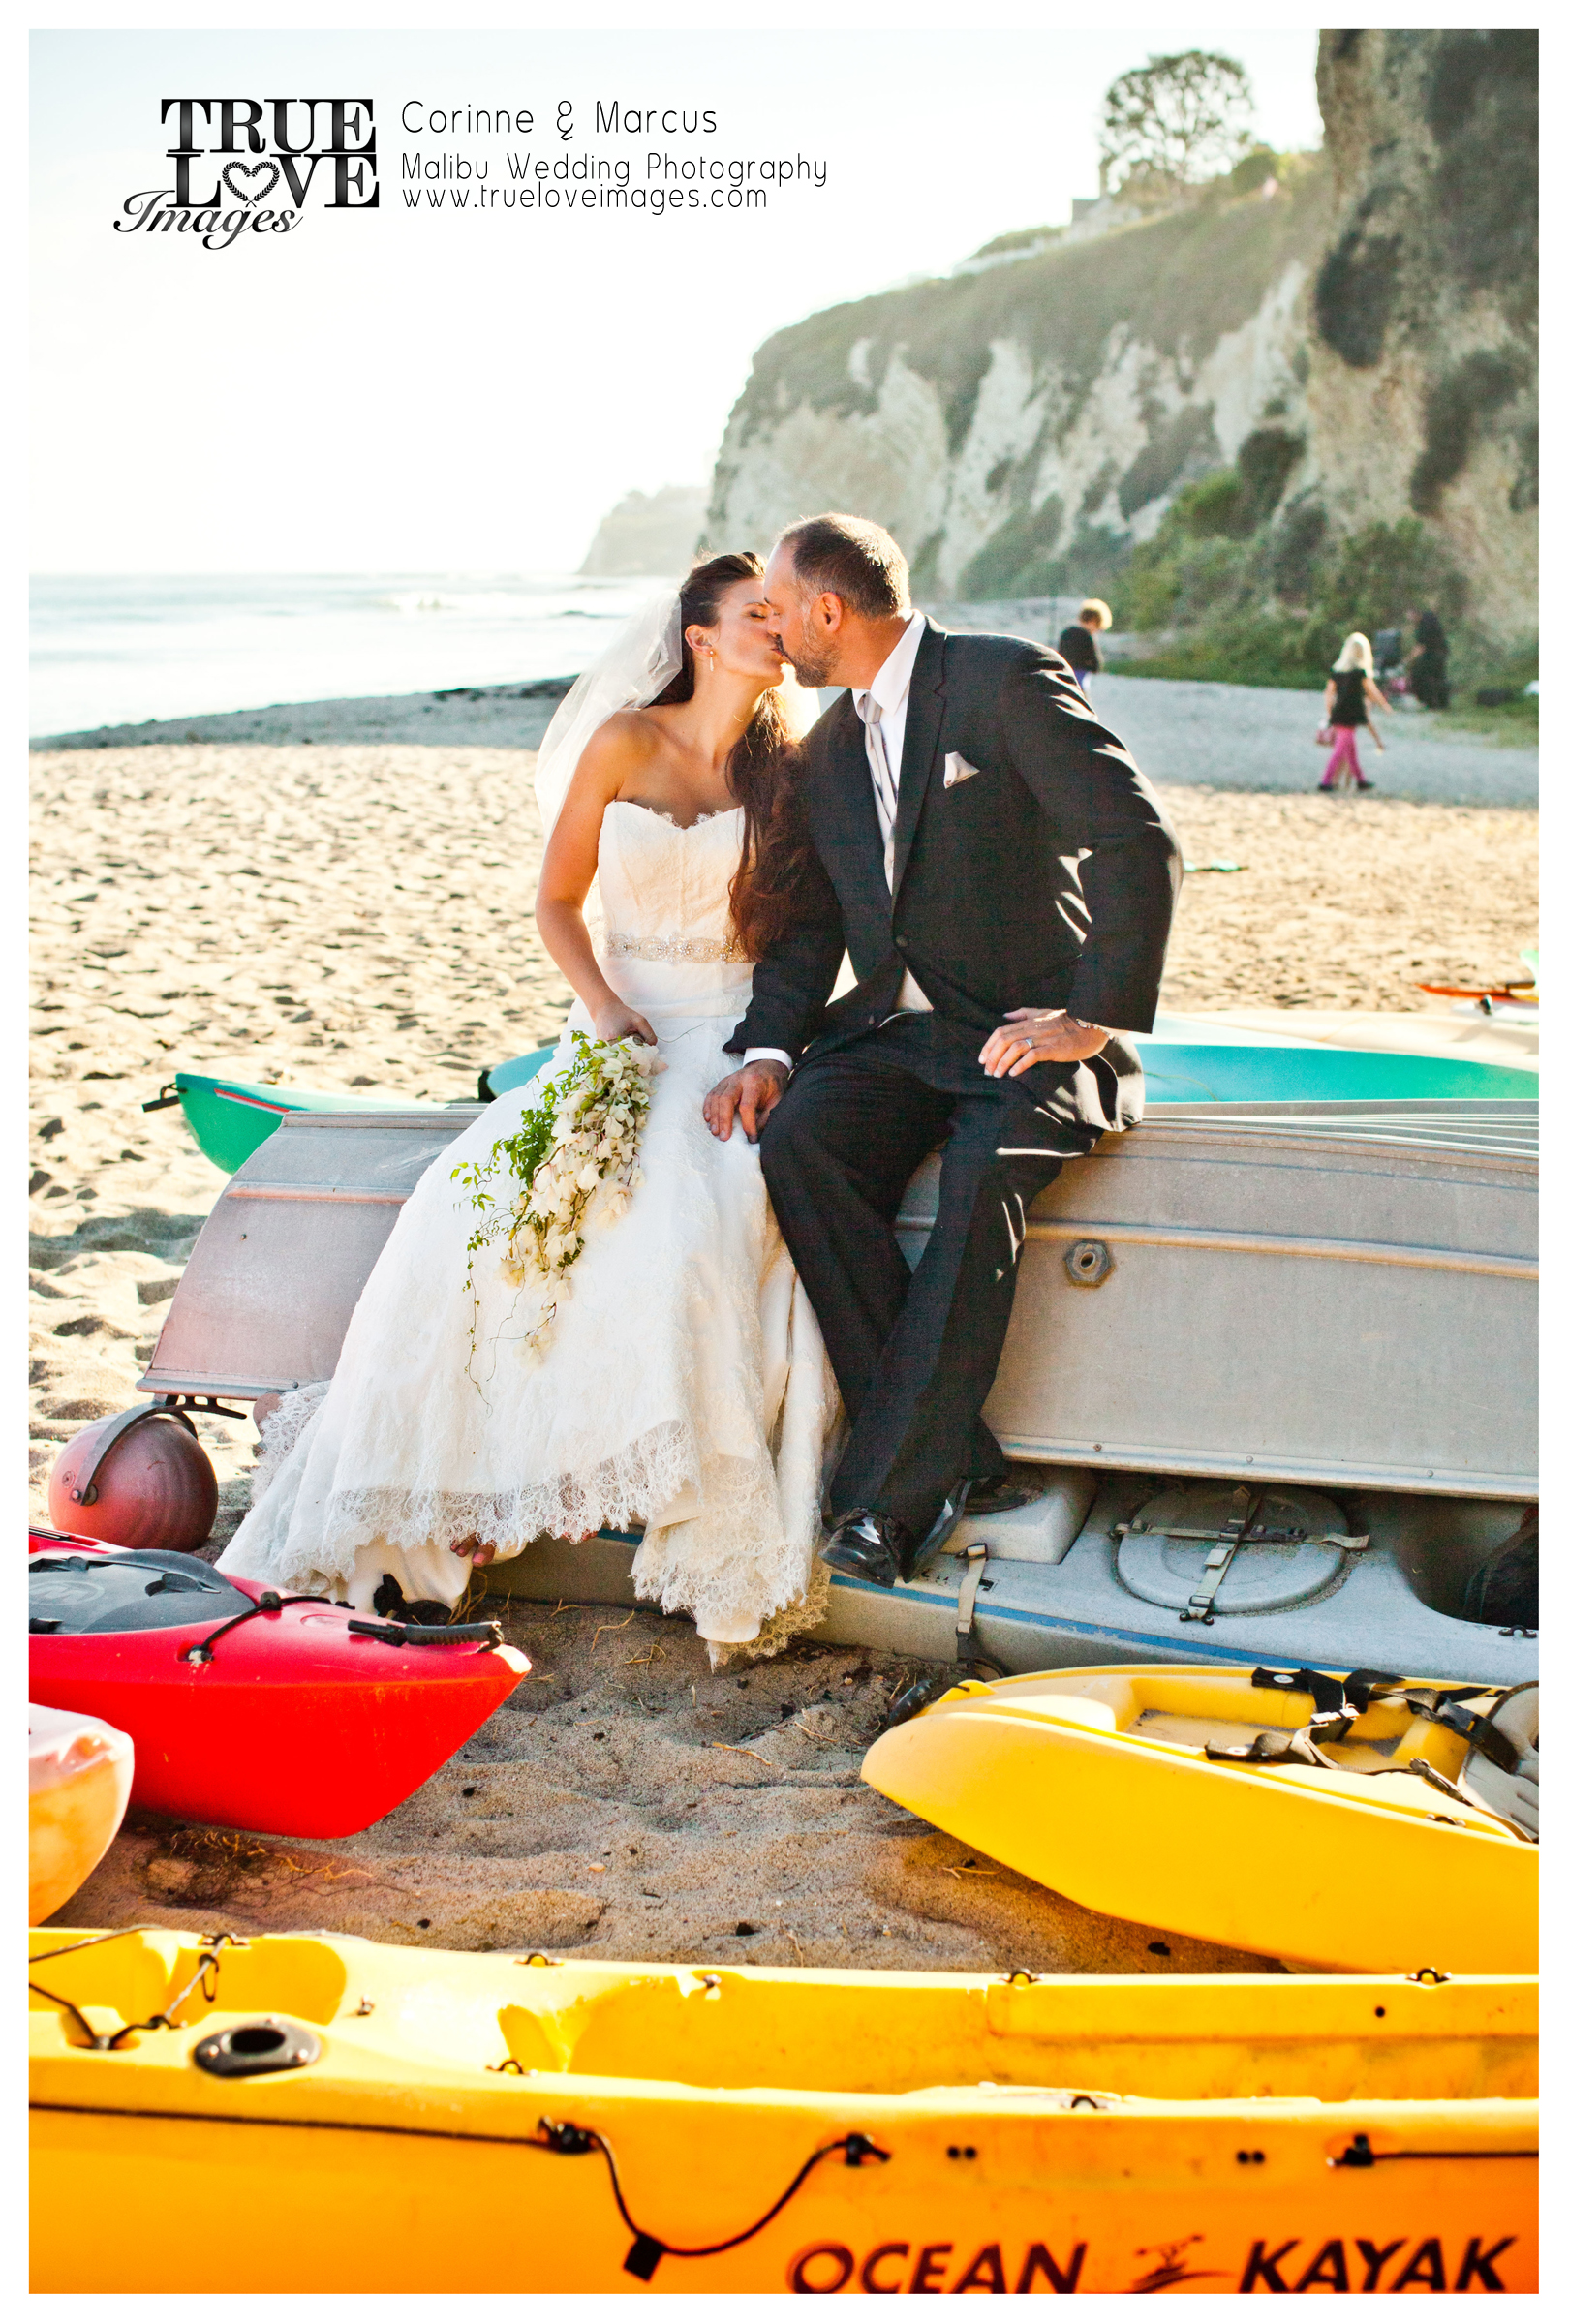 Marcus & Carinne Sumner Newly Weds in Malibu at Little Dume